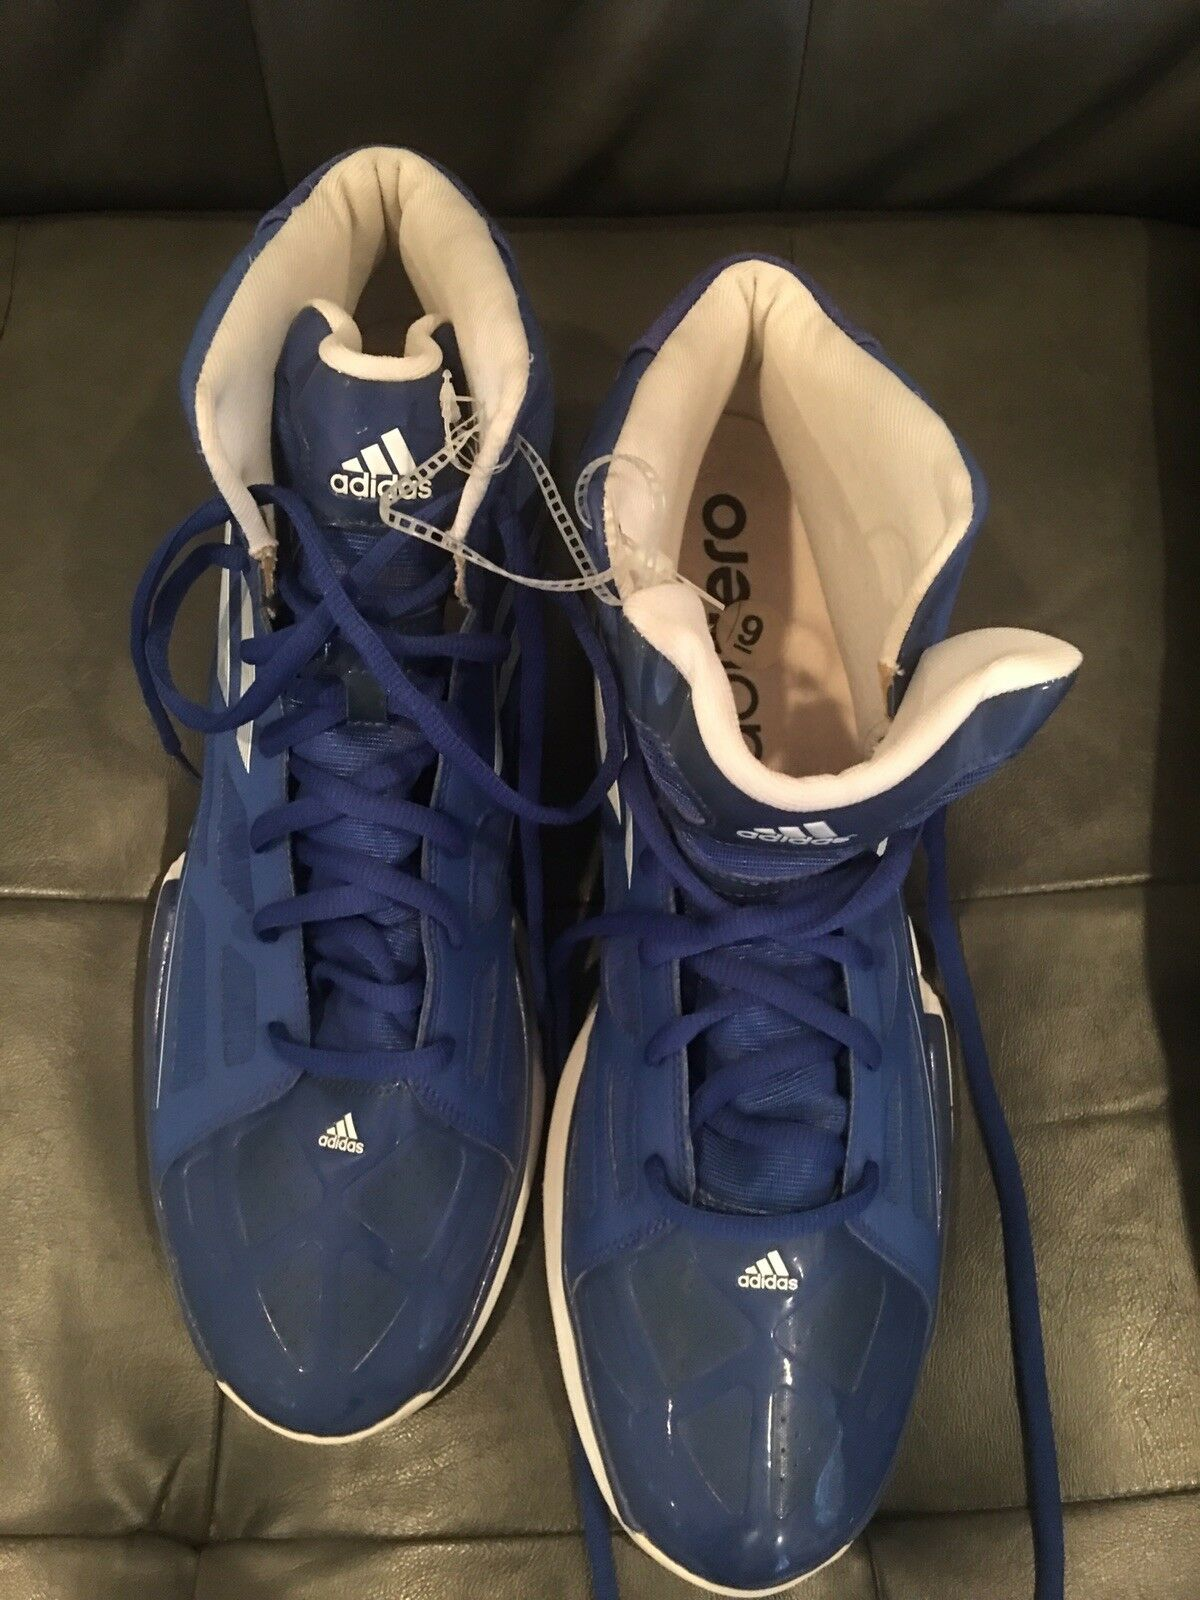 Adidas basketball shoes Size 19 Great